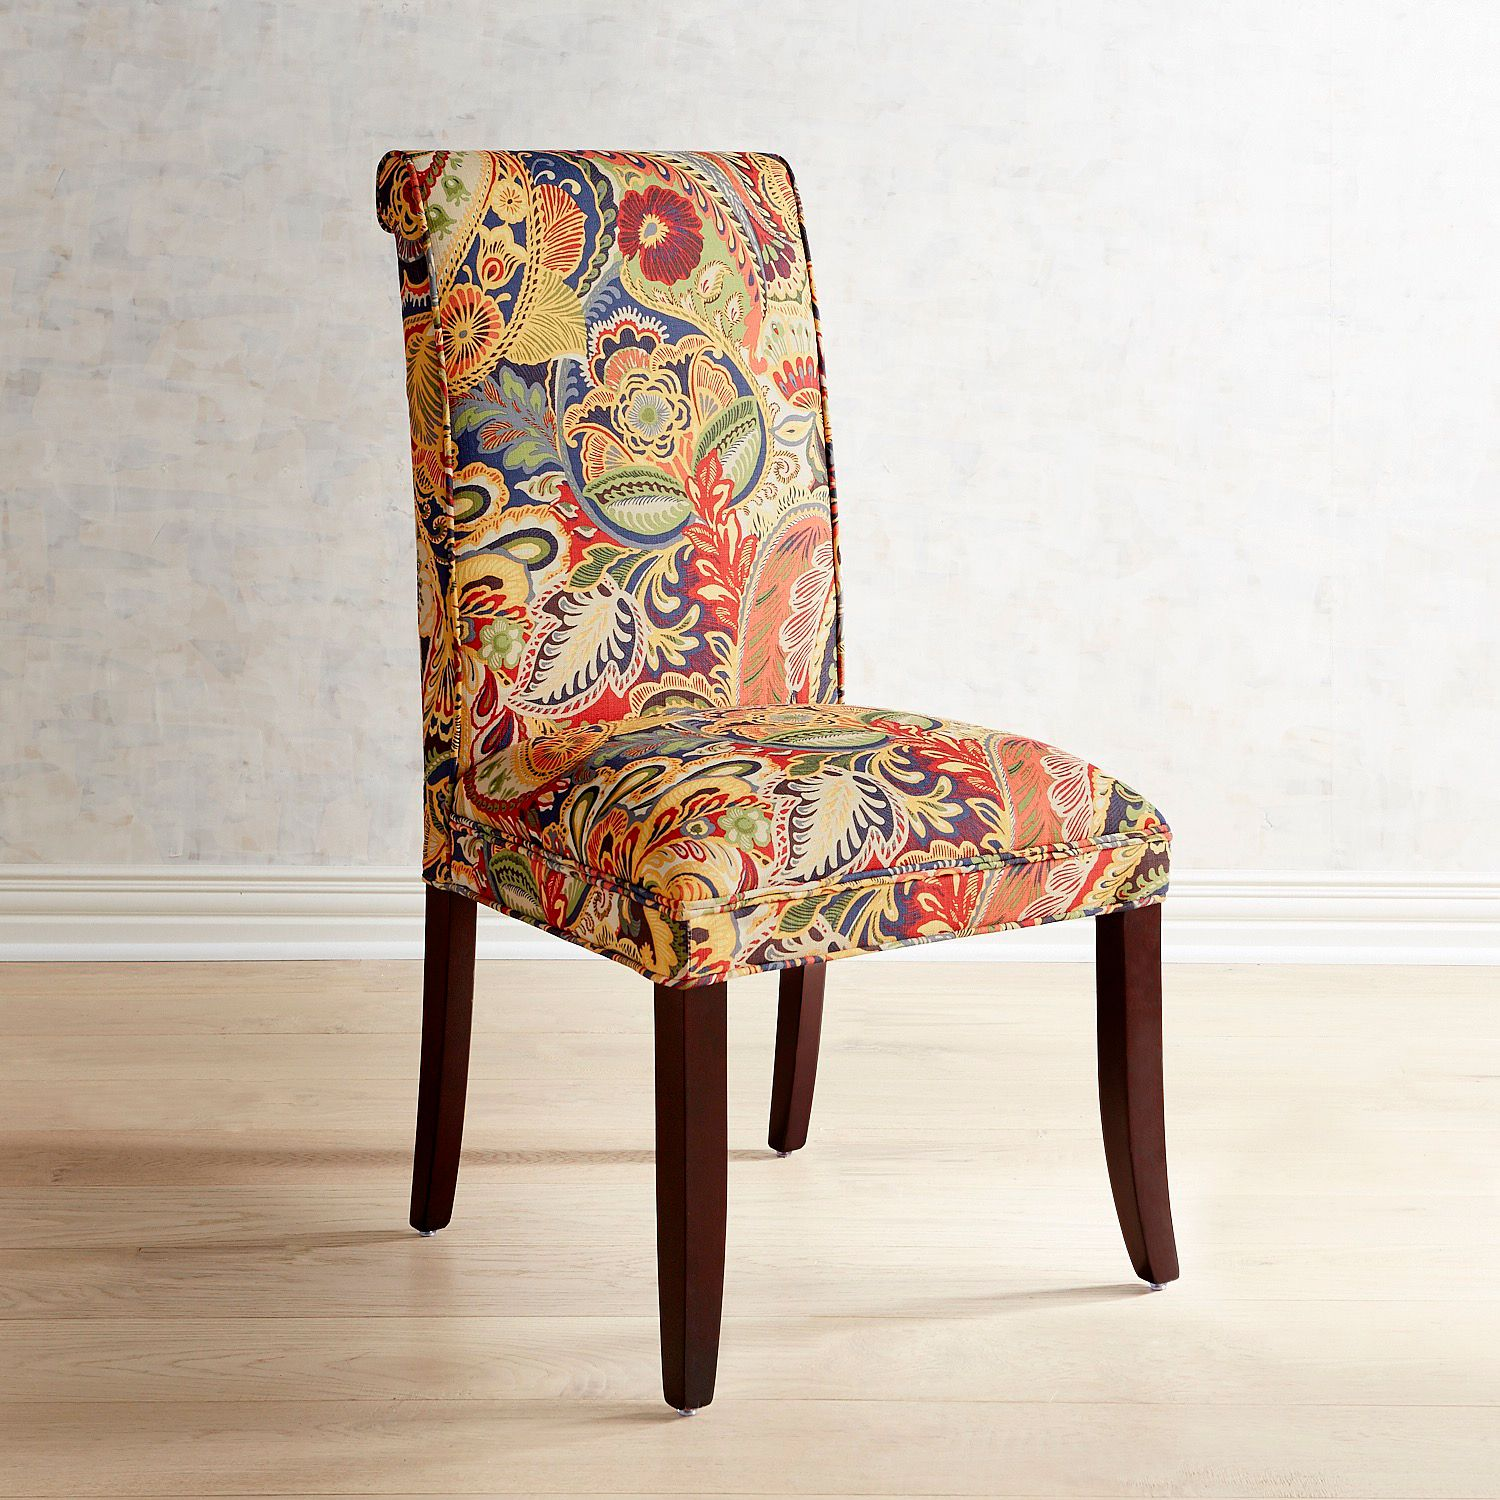 Angela Vibrant Paisley Dining Chair with Espresso Wood